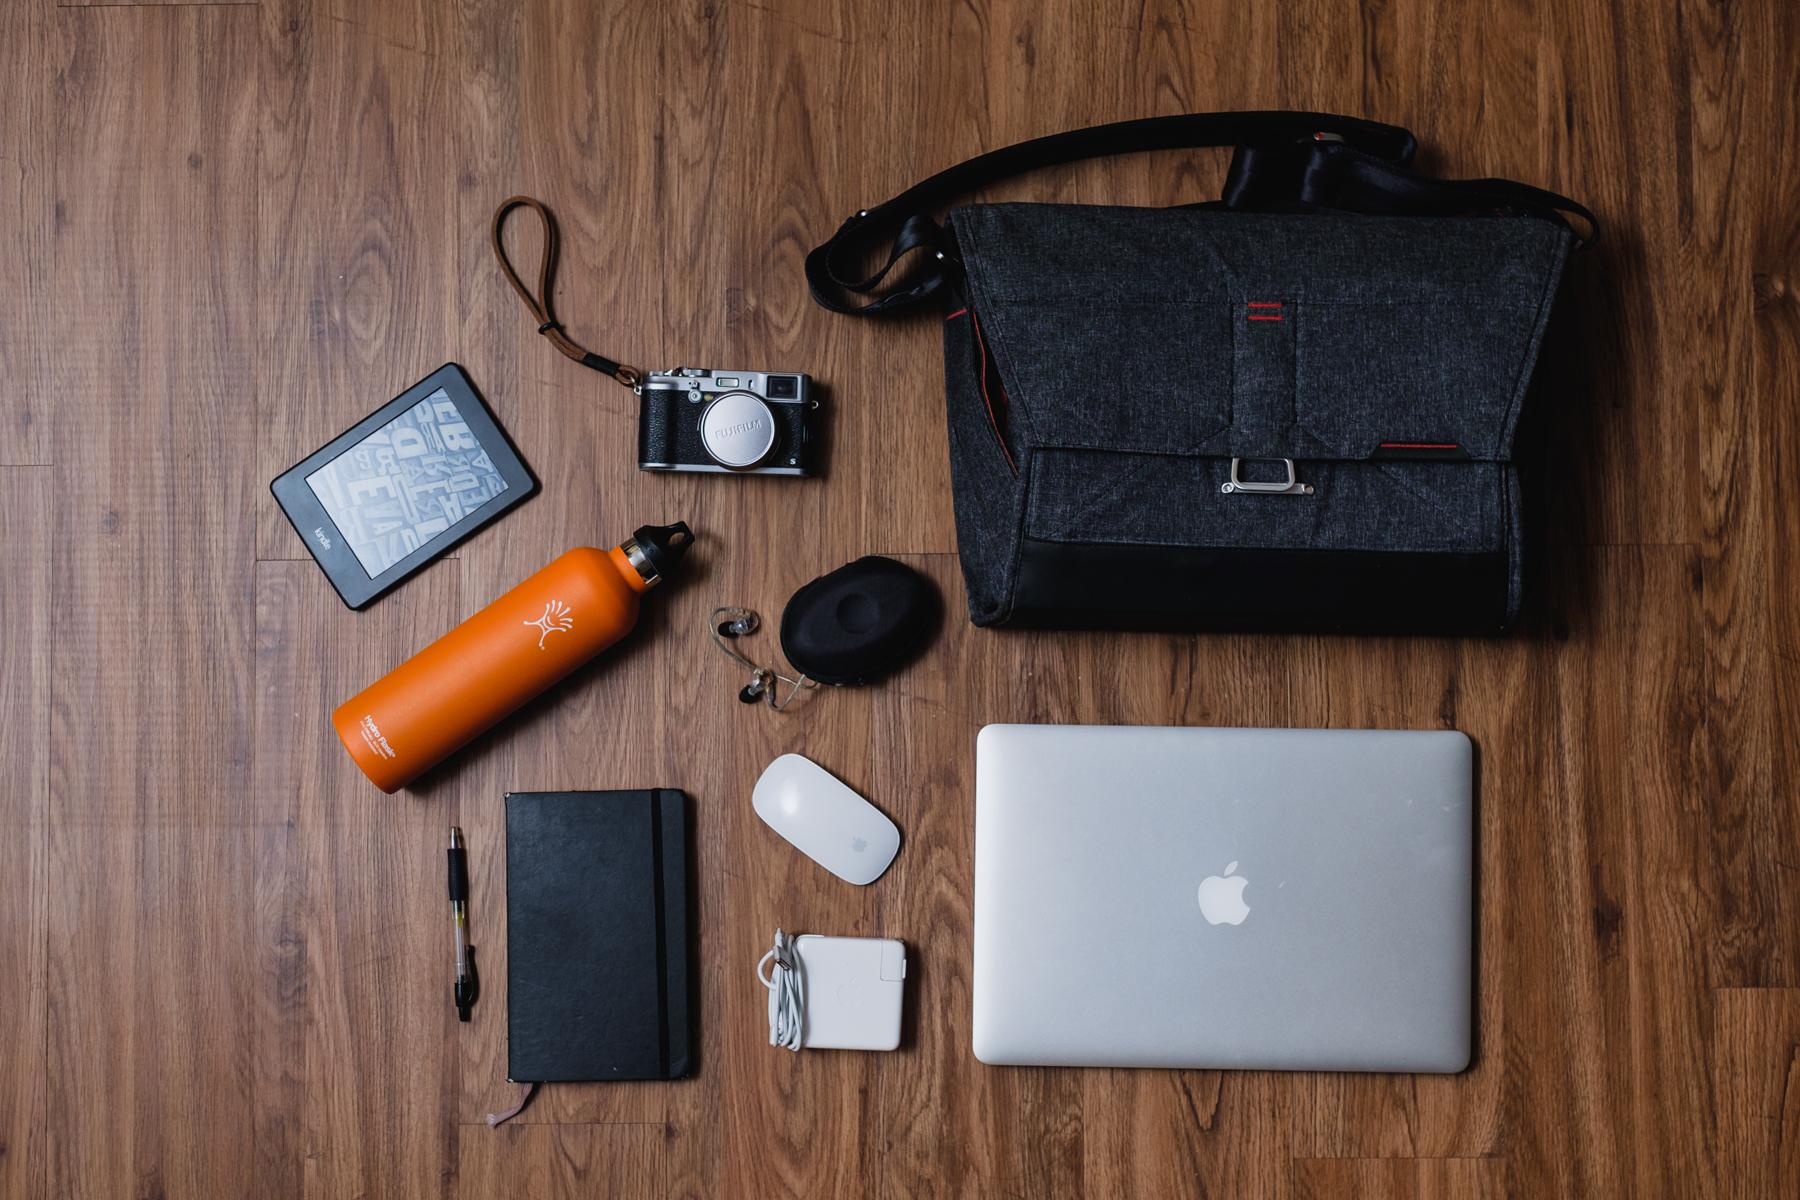 """This is my everyday setup (light version) 'Gotta get business stuff done bag'-Amazon Kindle Paperwhite, Fujifilm X100s camera ,   Shure E535 Earphones,  Hydro Flask water bottle,Moleskine notebook with Pilot G-2 Pen,  Apple Magic Mouse, Apple MagSafe Charger, and  Apple Macbook Pro 15"""""""